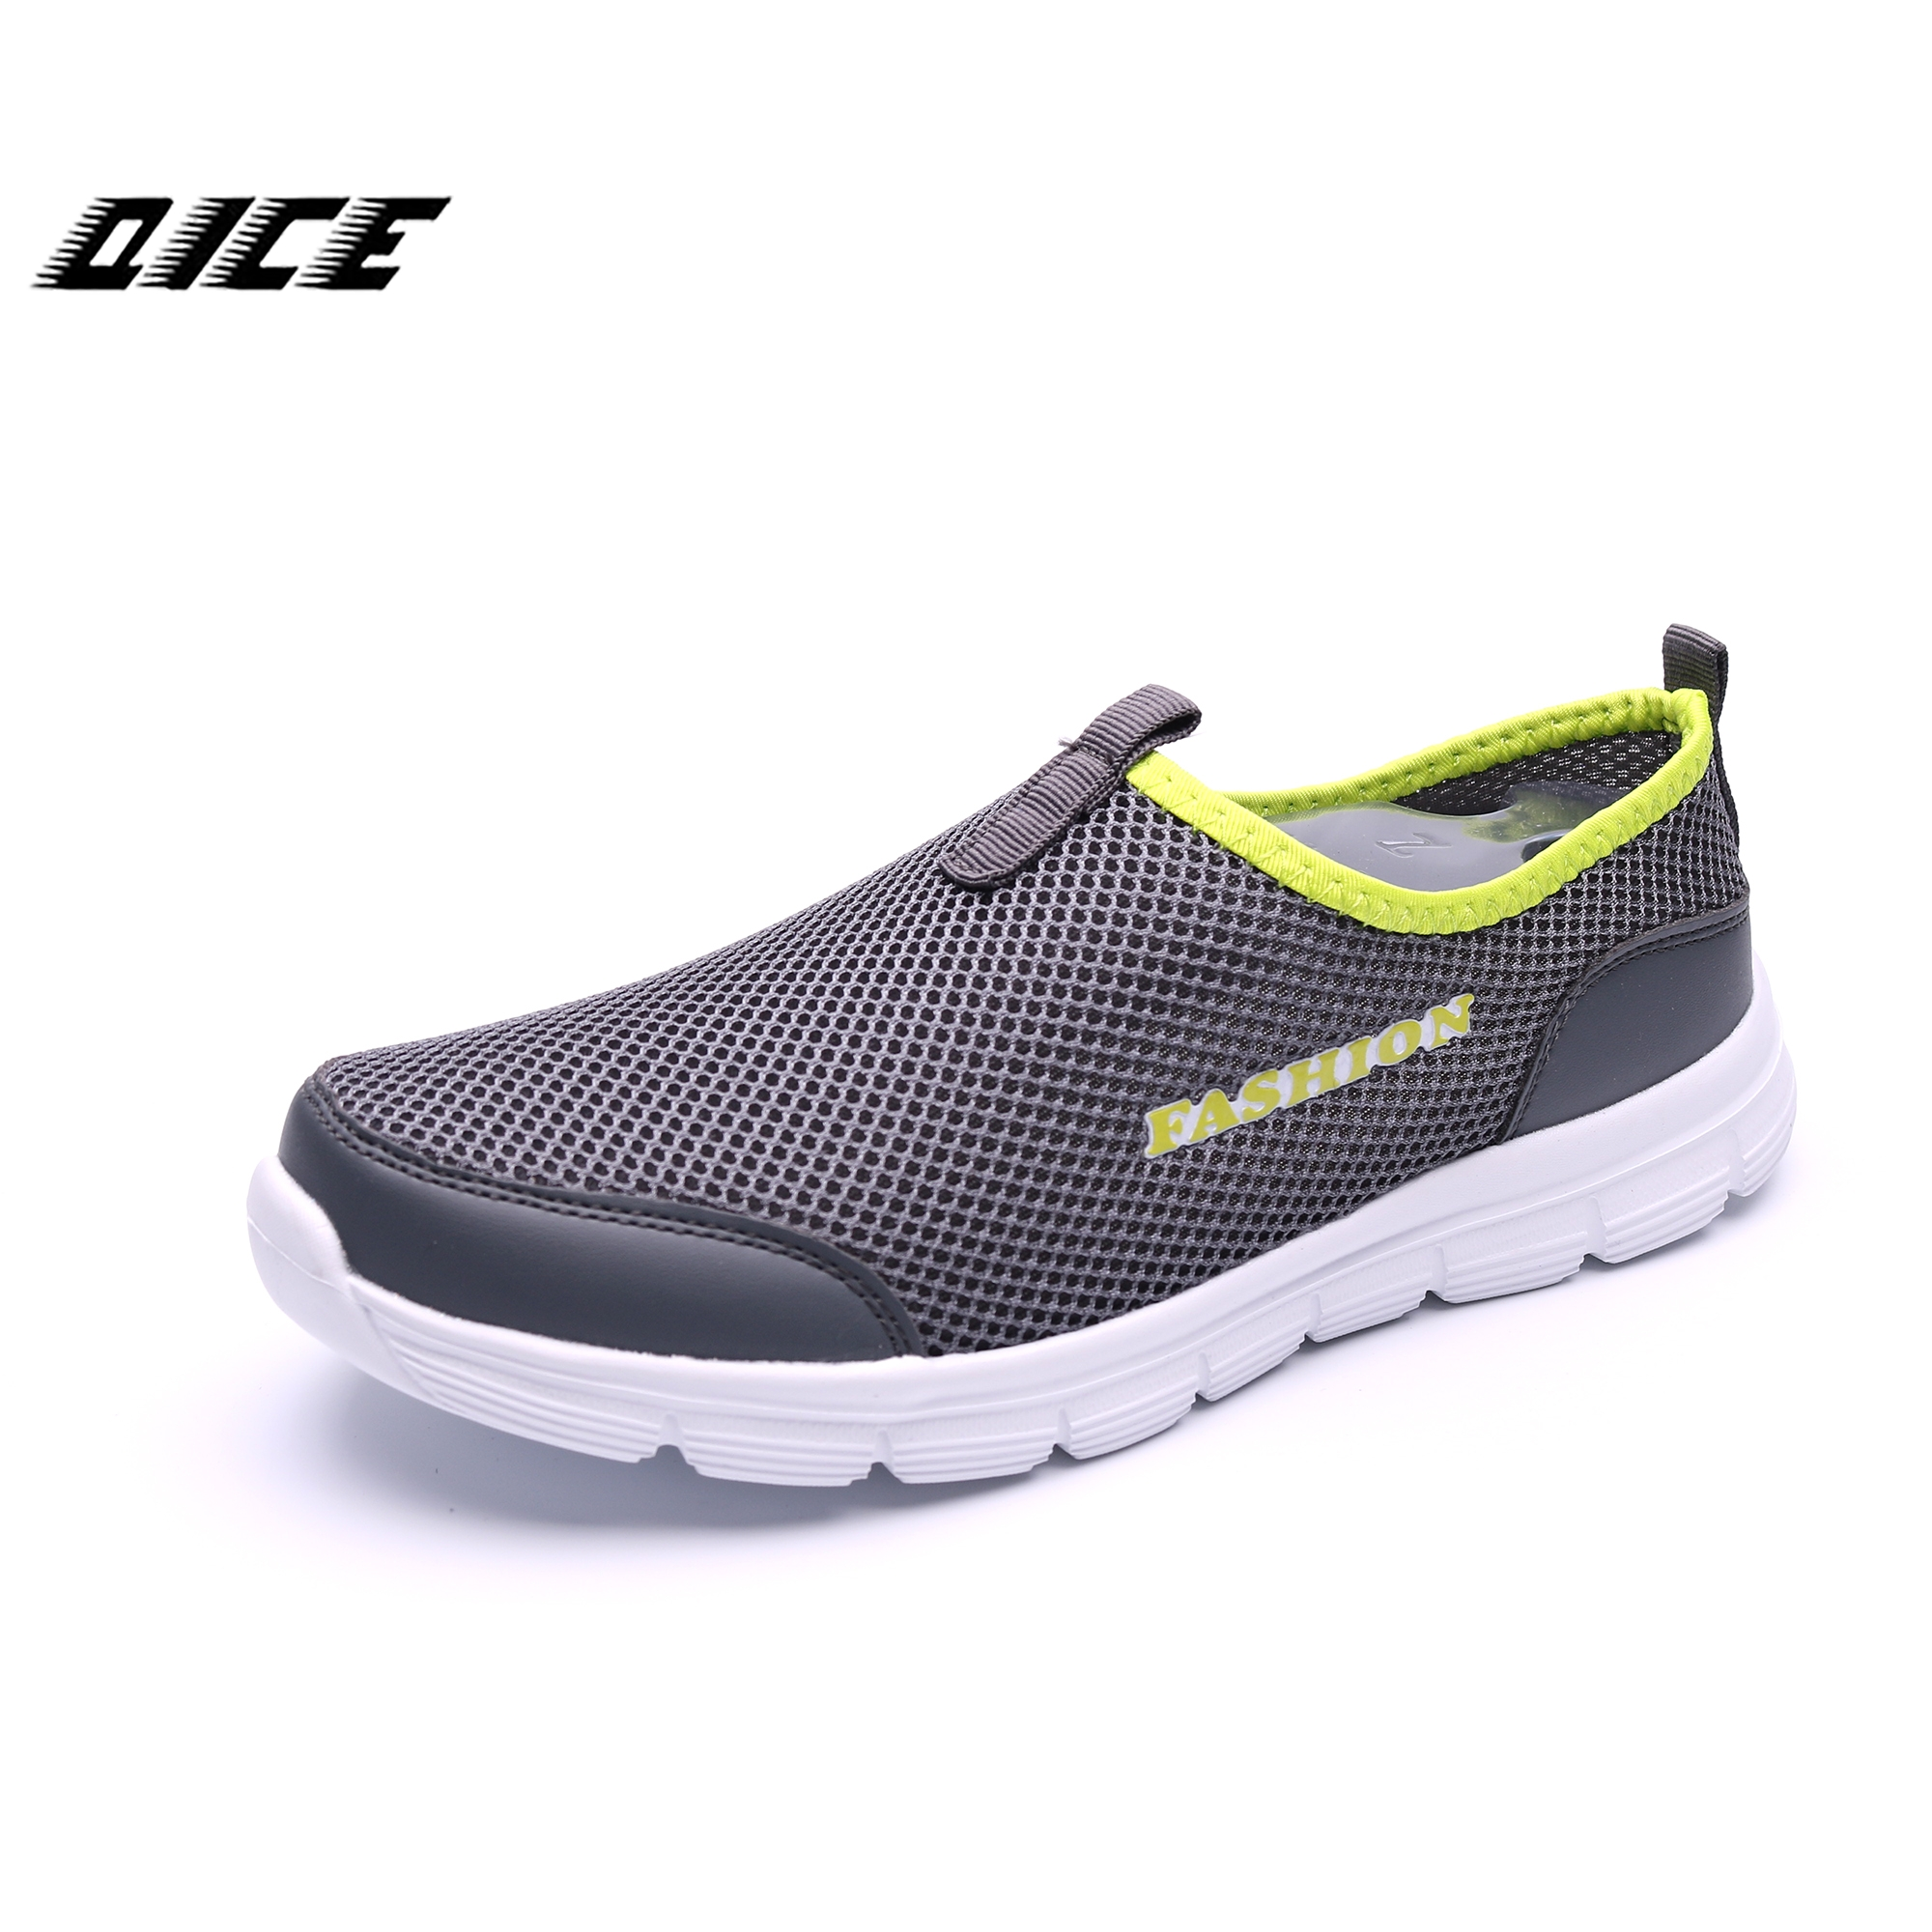 2017 Men's Lightweight Breathable Quick Dry Water Shoes Summer Shoes Sneakers Mesh Breathable Upstream Shoes